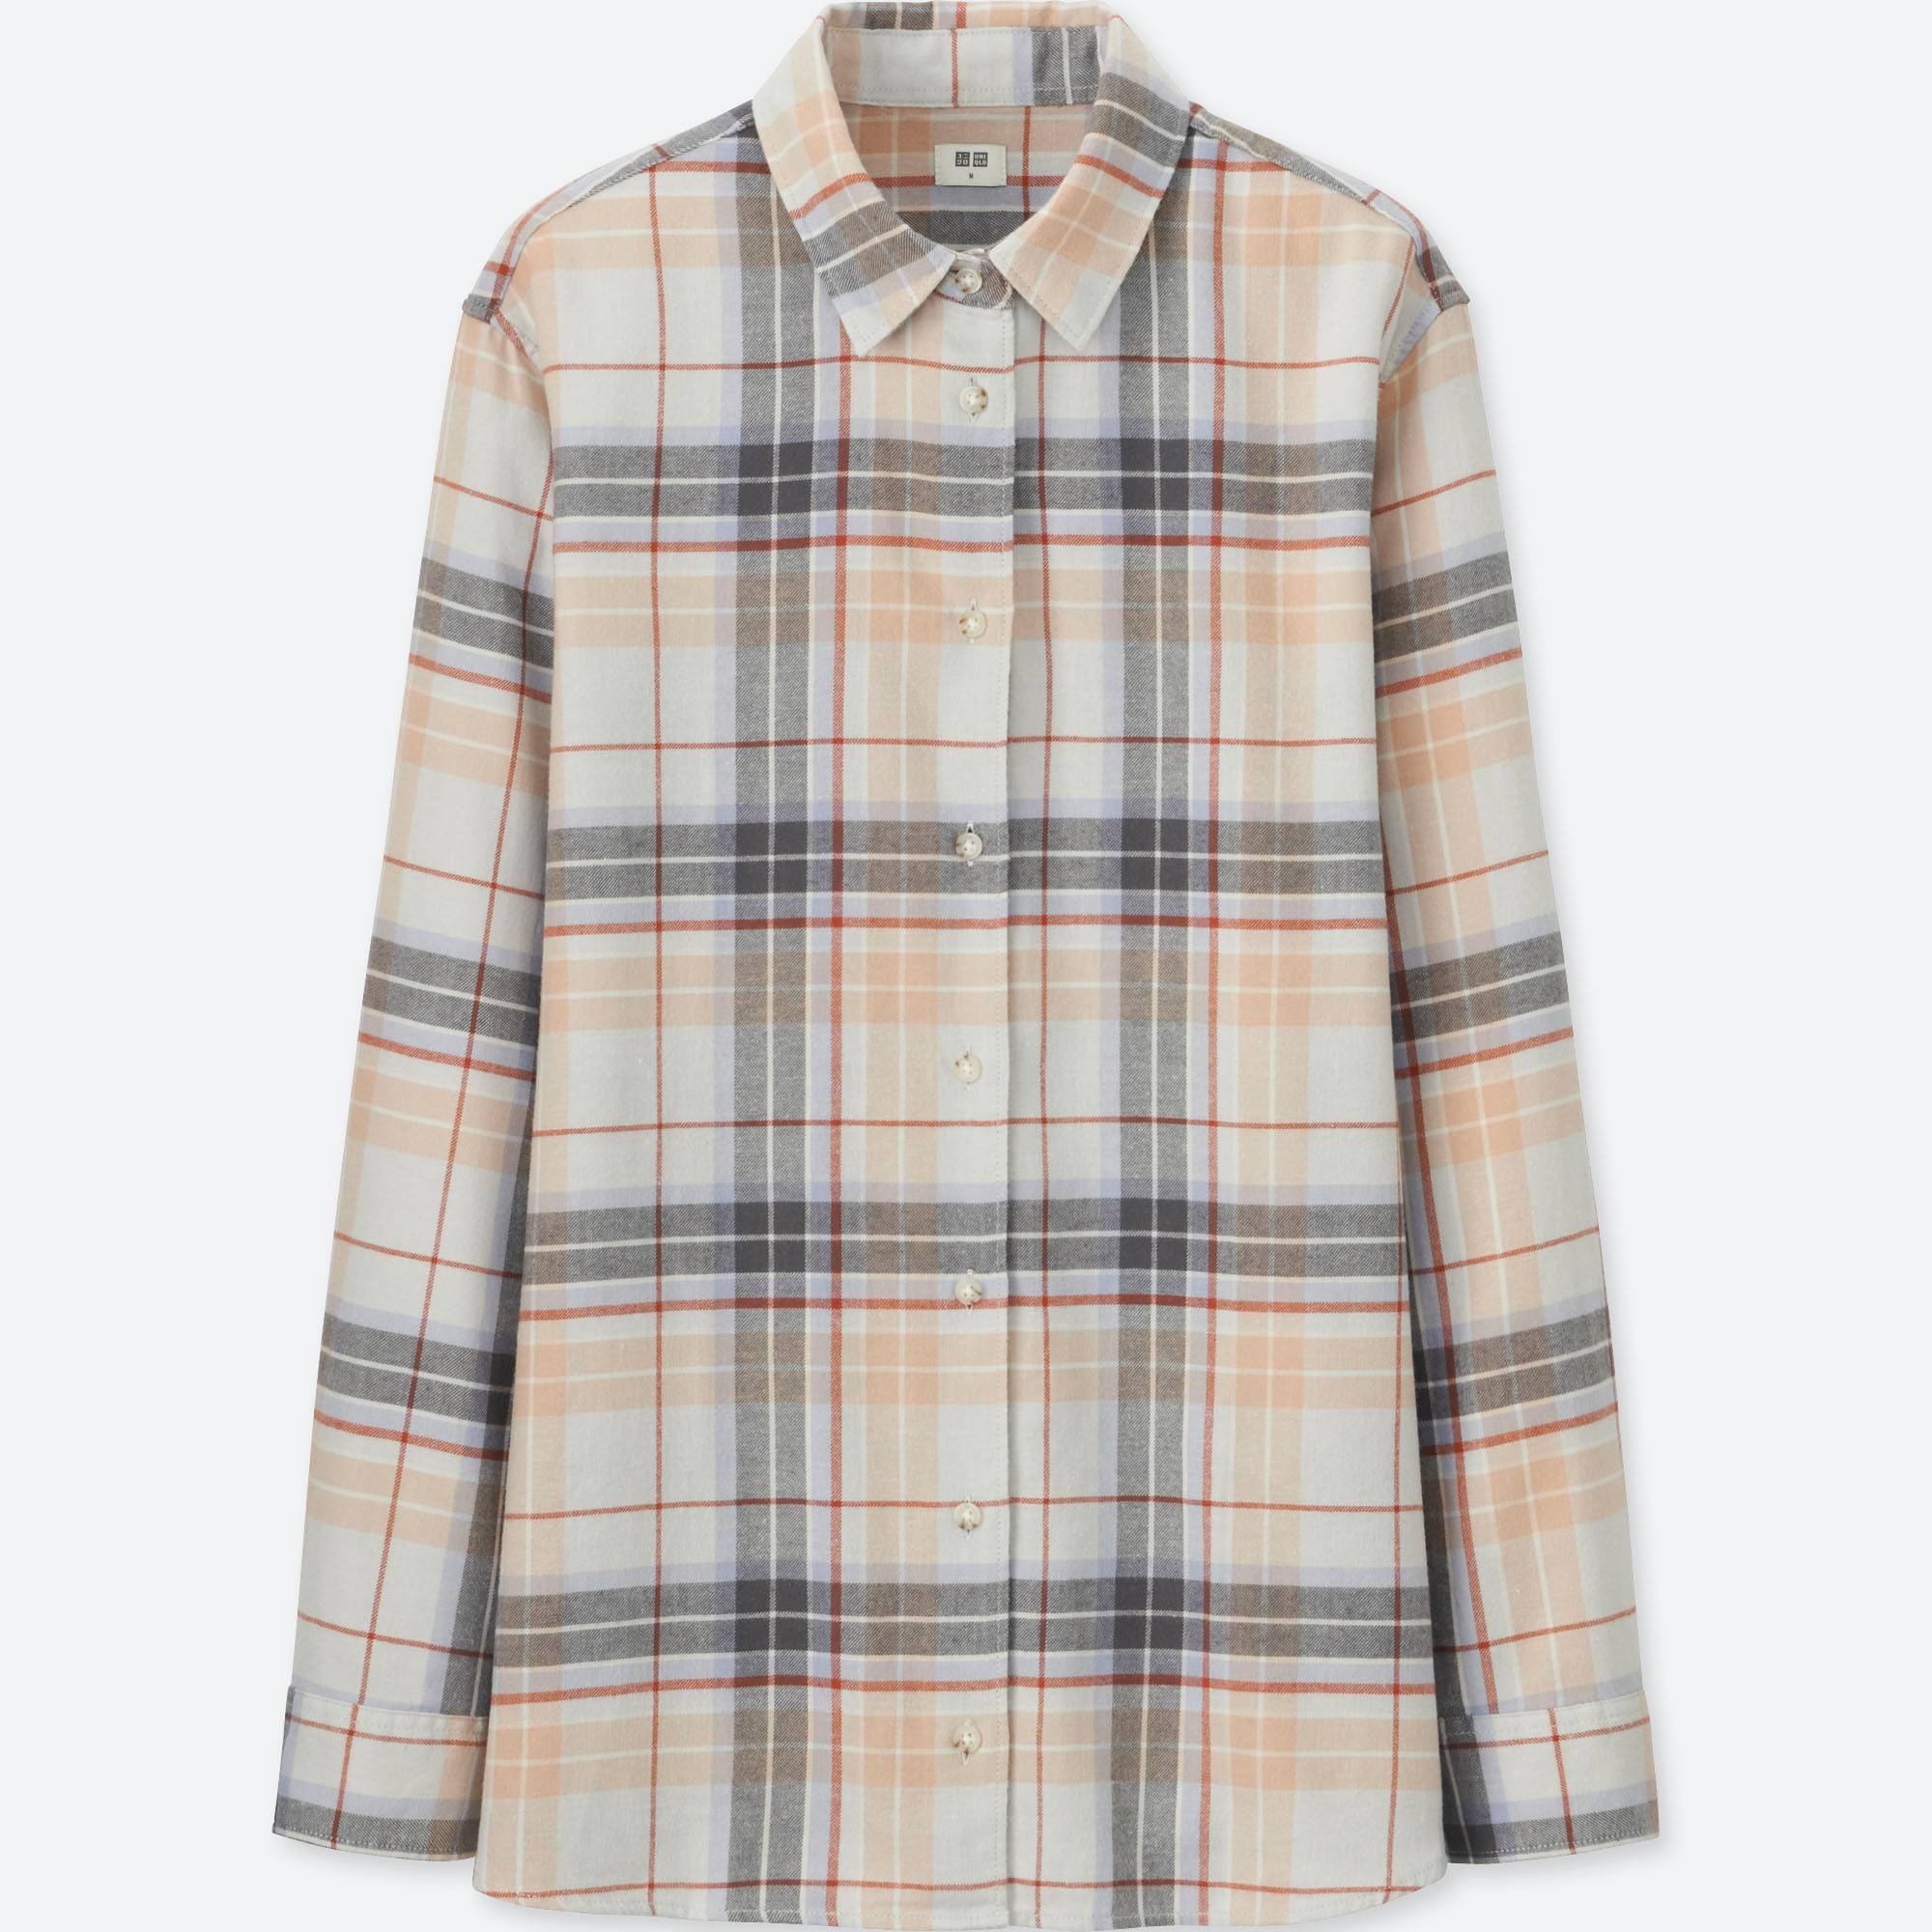 WOMEN FLANNEL CHECKED LONG-SLEEVE SHIRT   UNIQLO US